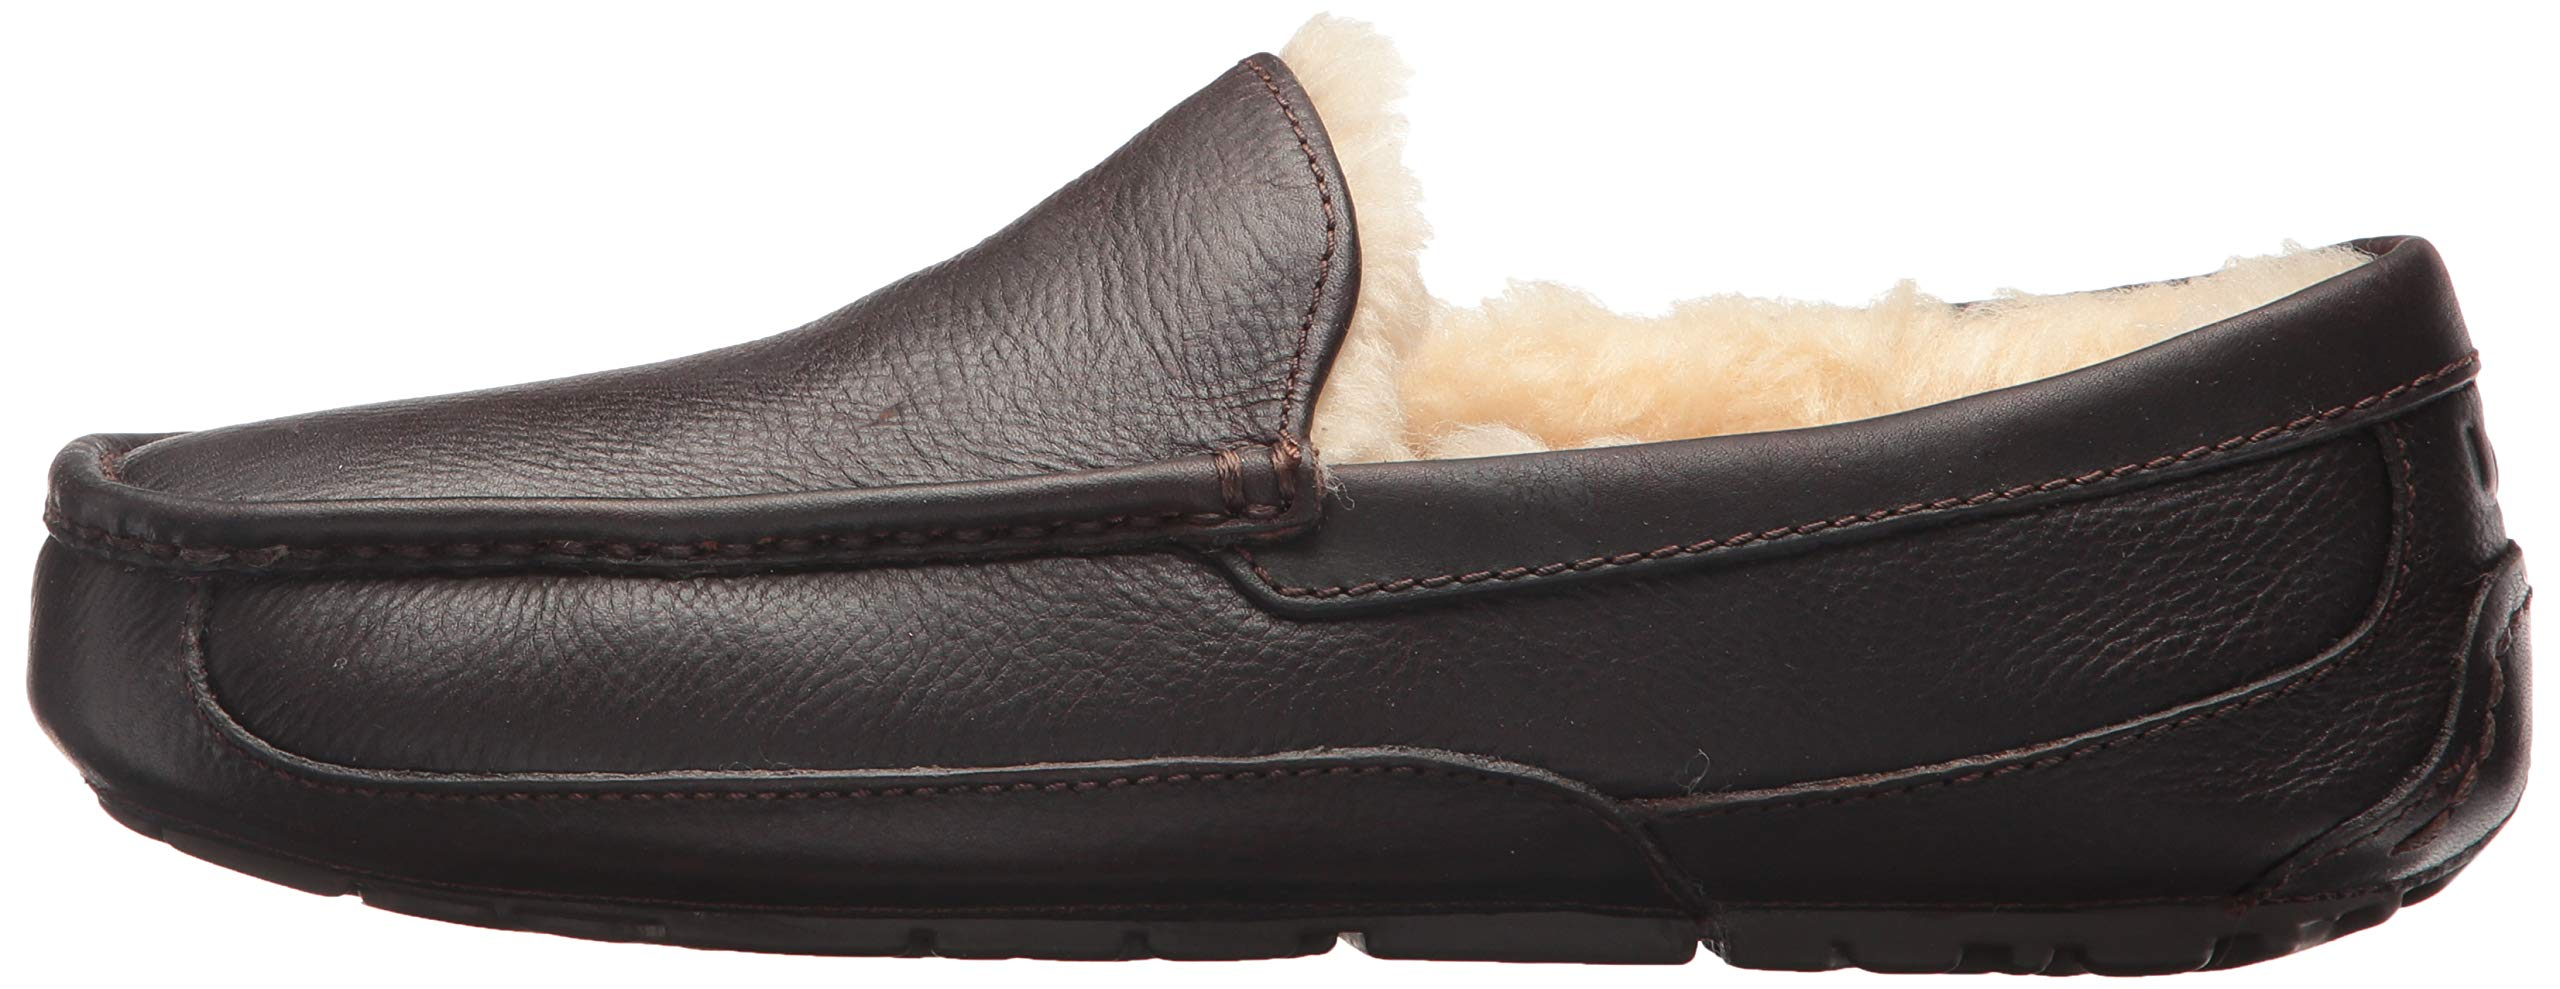 UGG Men's Ascot Slipper, China Tea Leather, 15 M US by UGG (Image #5)